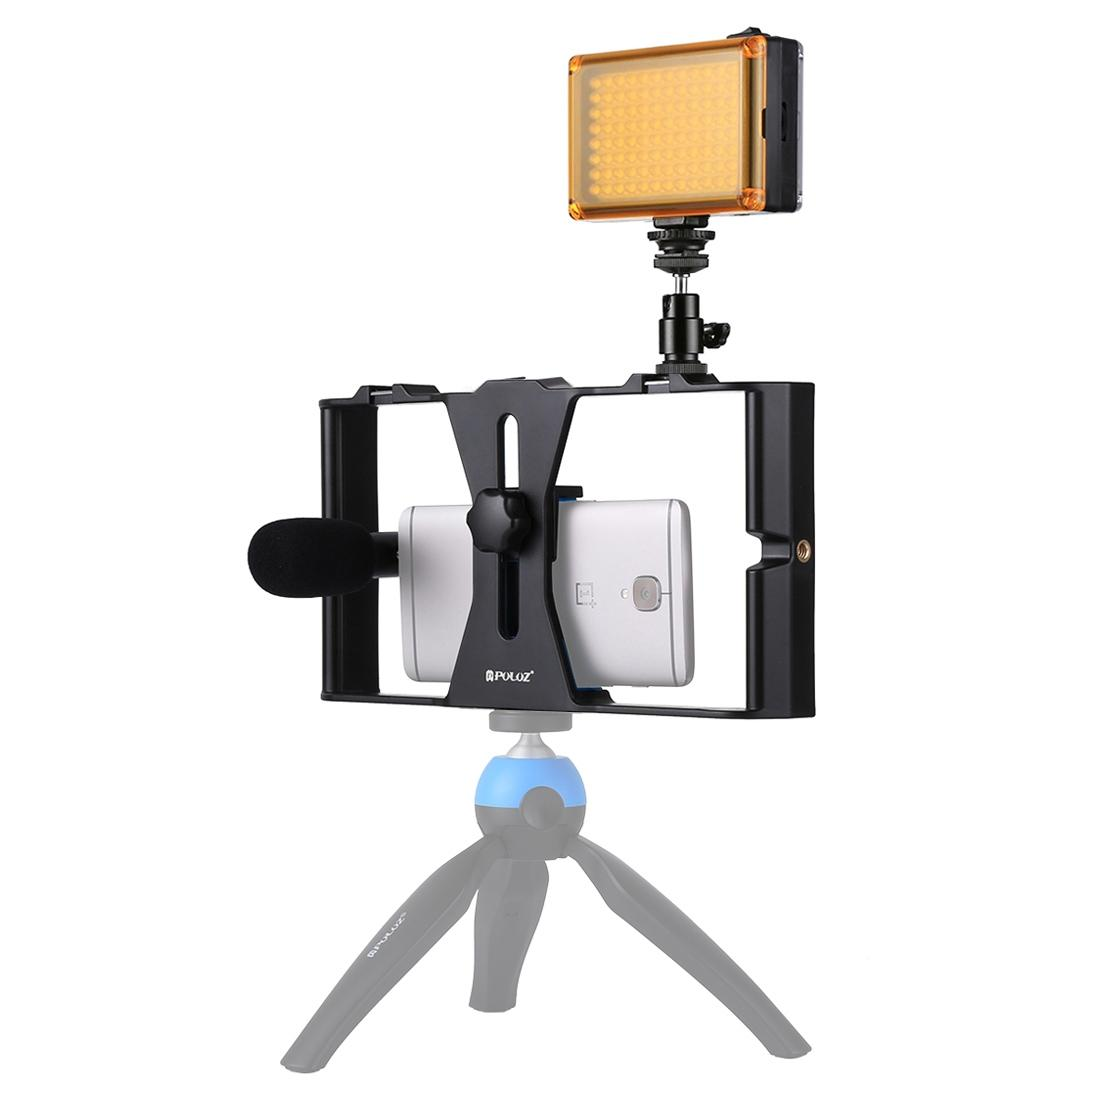 PULUZ Smartphone Video Rig + LED Studio Light + Video Shotgun Microphone  Kits with Cold Shoe Tripod Head for iPhone, Galaxy, Huawei, Xiaomi, HTC,  LG,